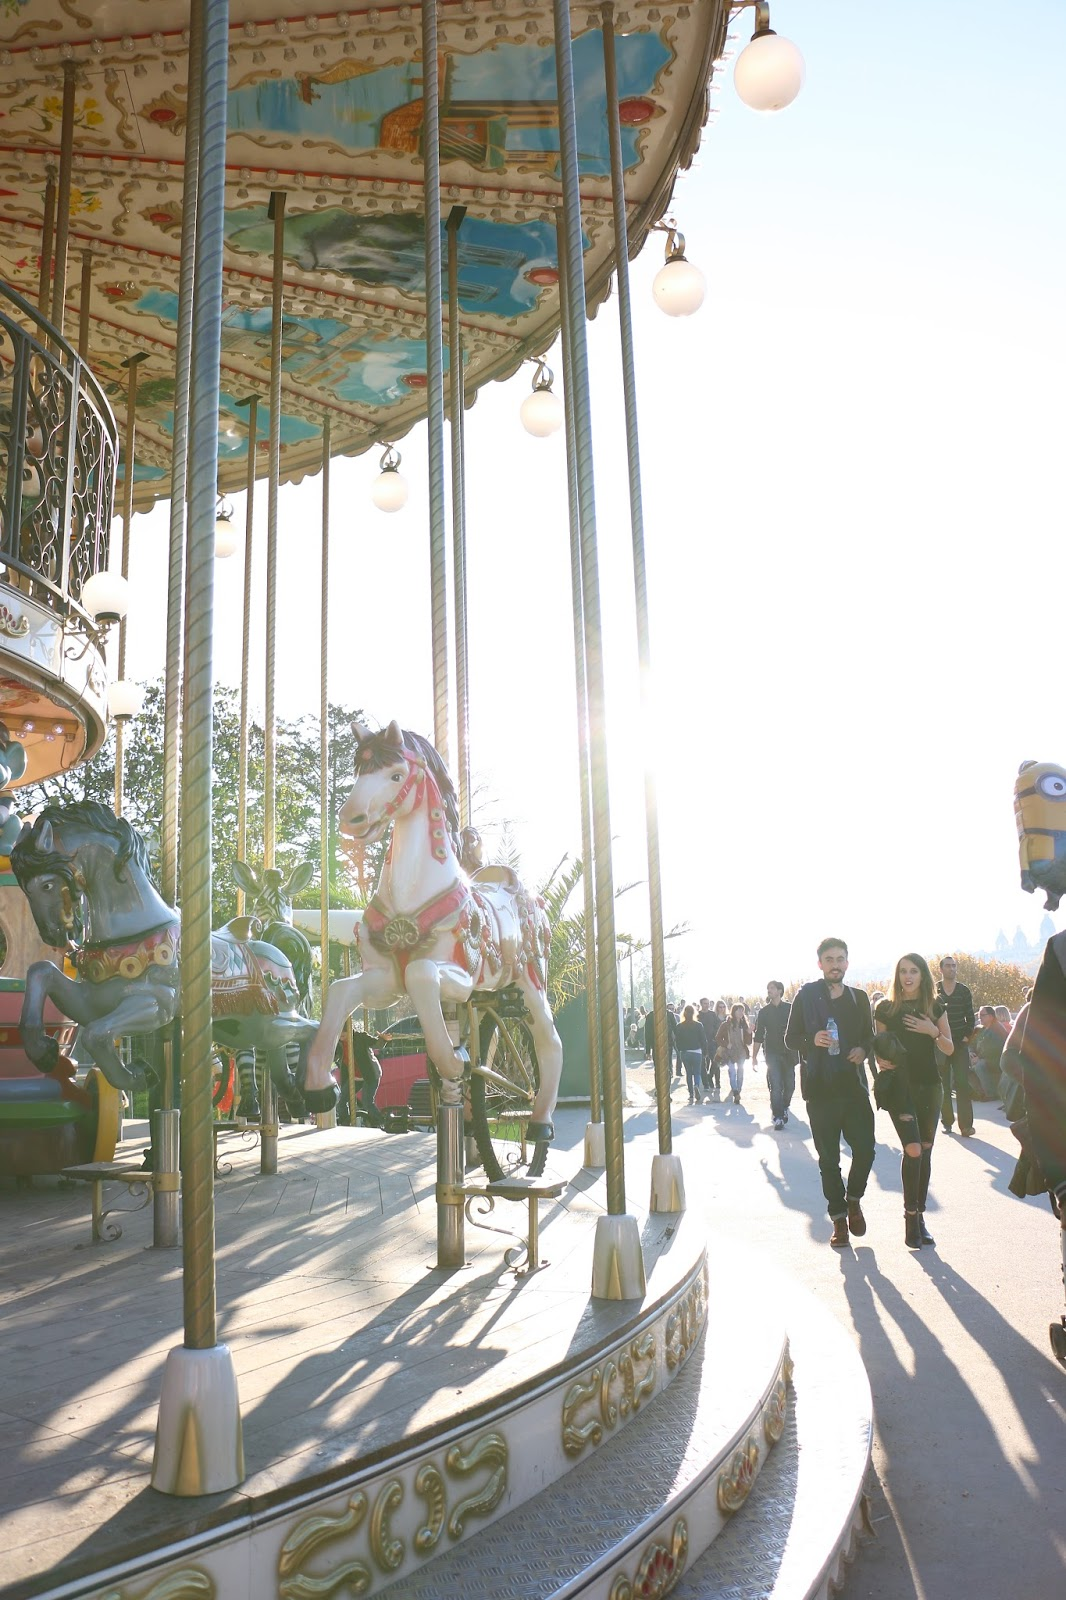 gorgeous photo of old world carousel in paris in the fall, lens flare of sun shine